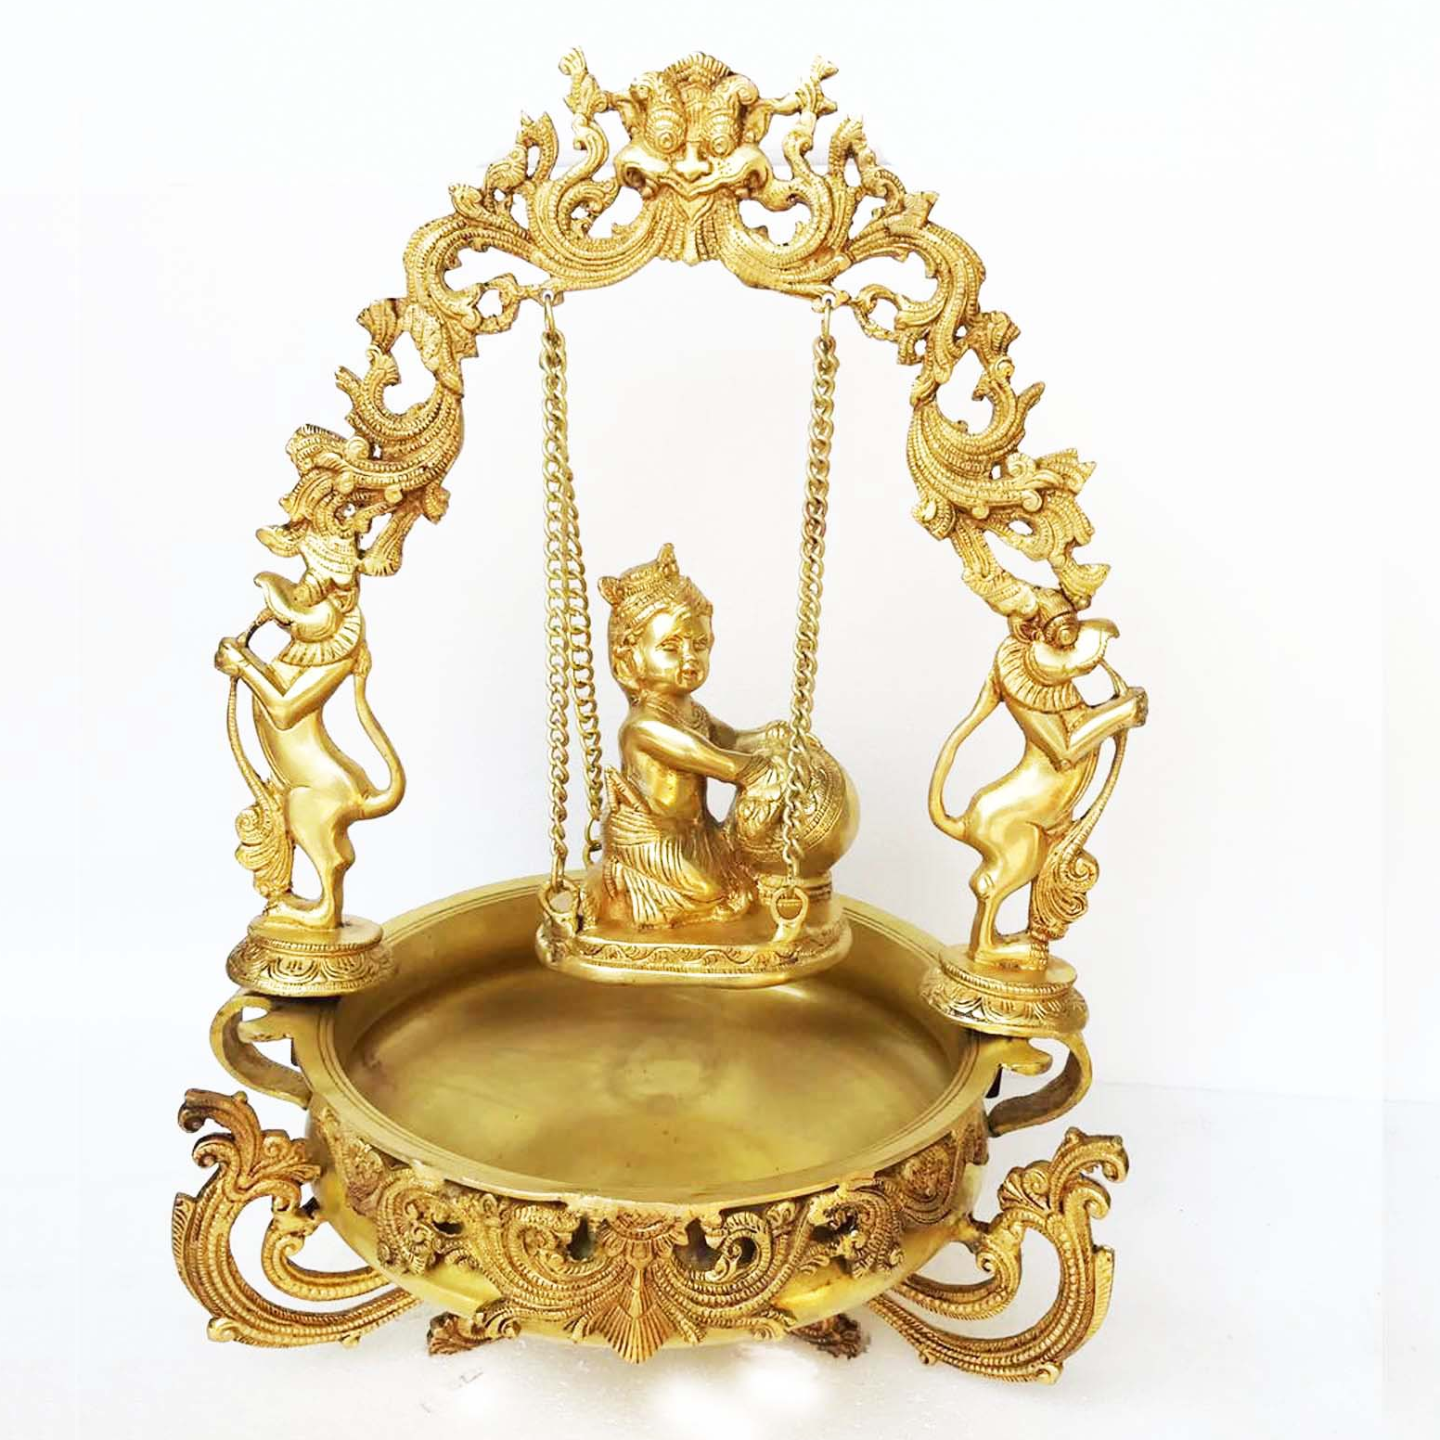 Urli with decoration Brass Made Baby Krishna on swing figure Home office table Decor Decorative Urli (BS012 M)